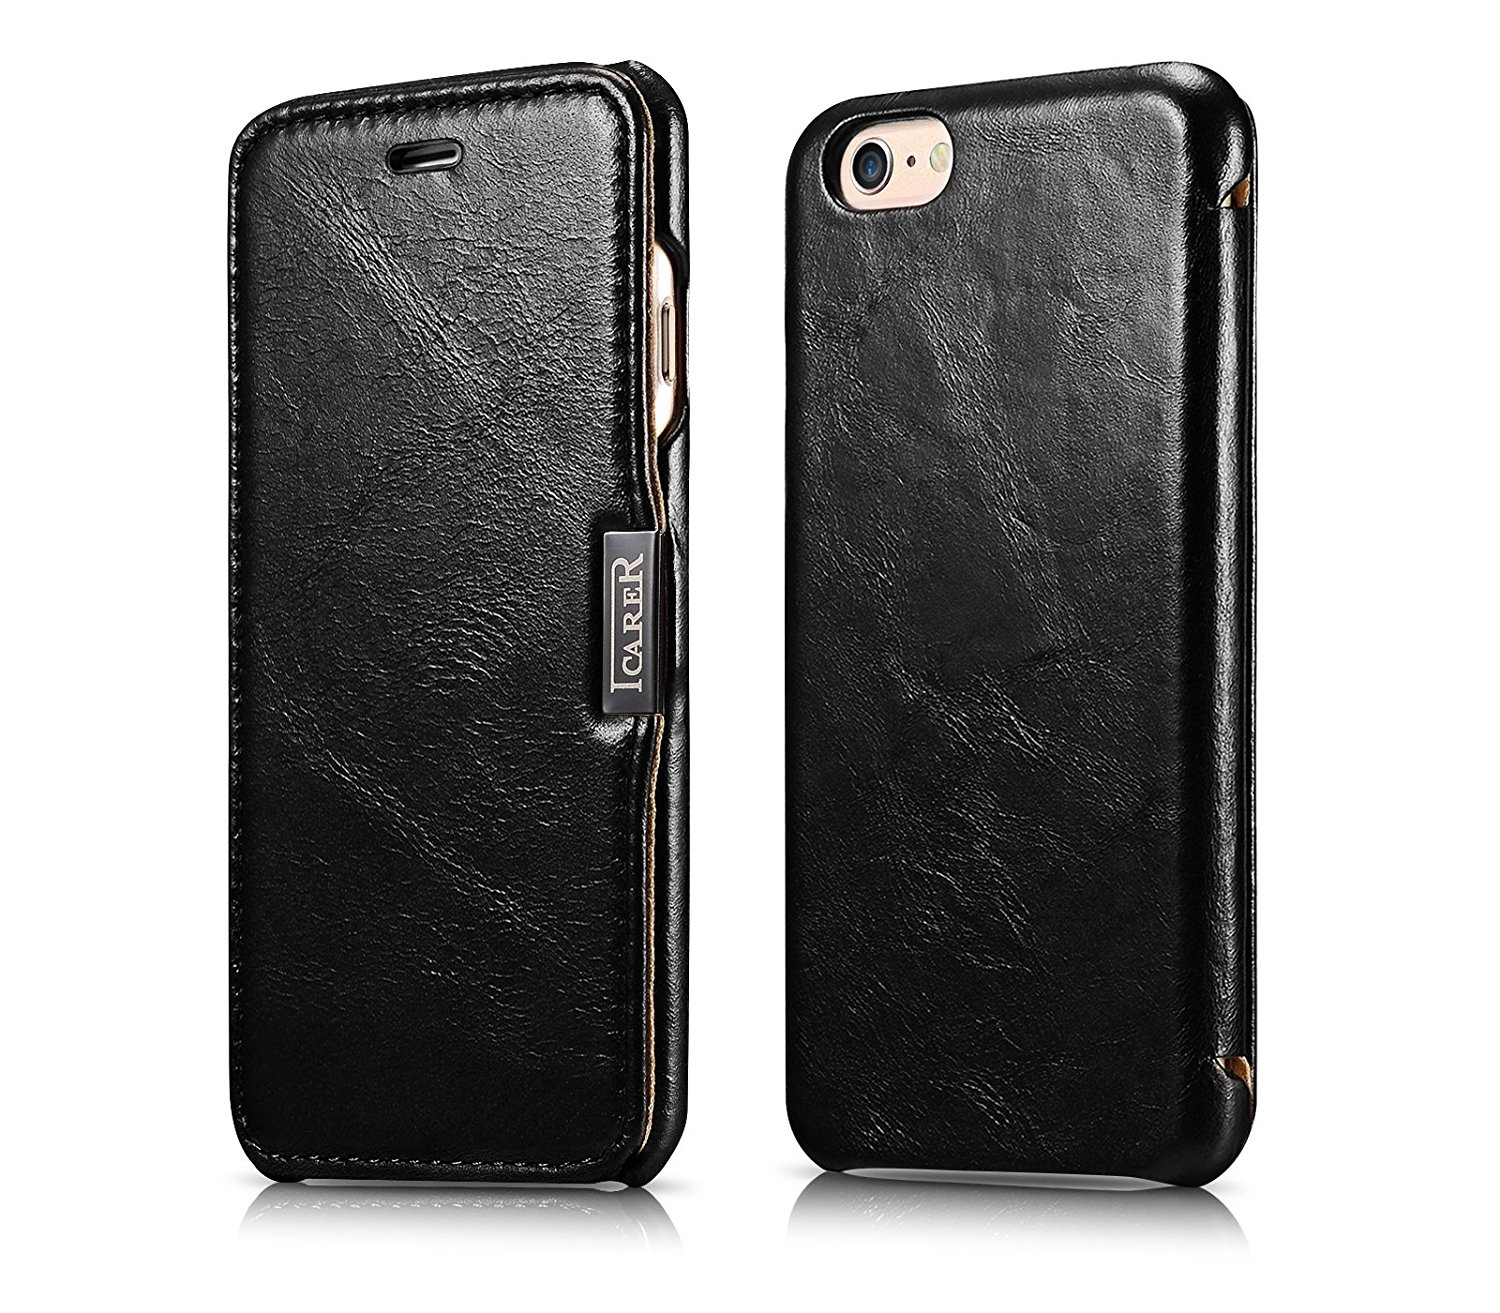 iCarer Vintage Series Side-Open Δερμάτινη Θήκη iPhone 6/6S - Black (10063)